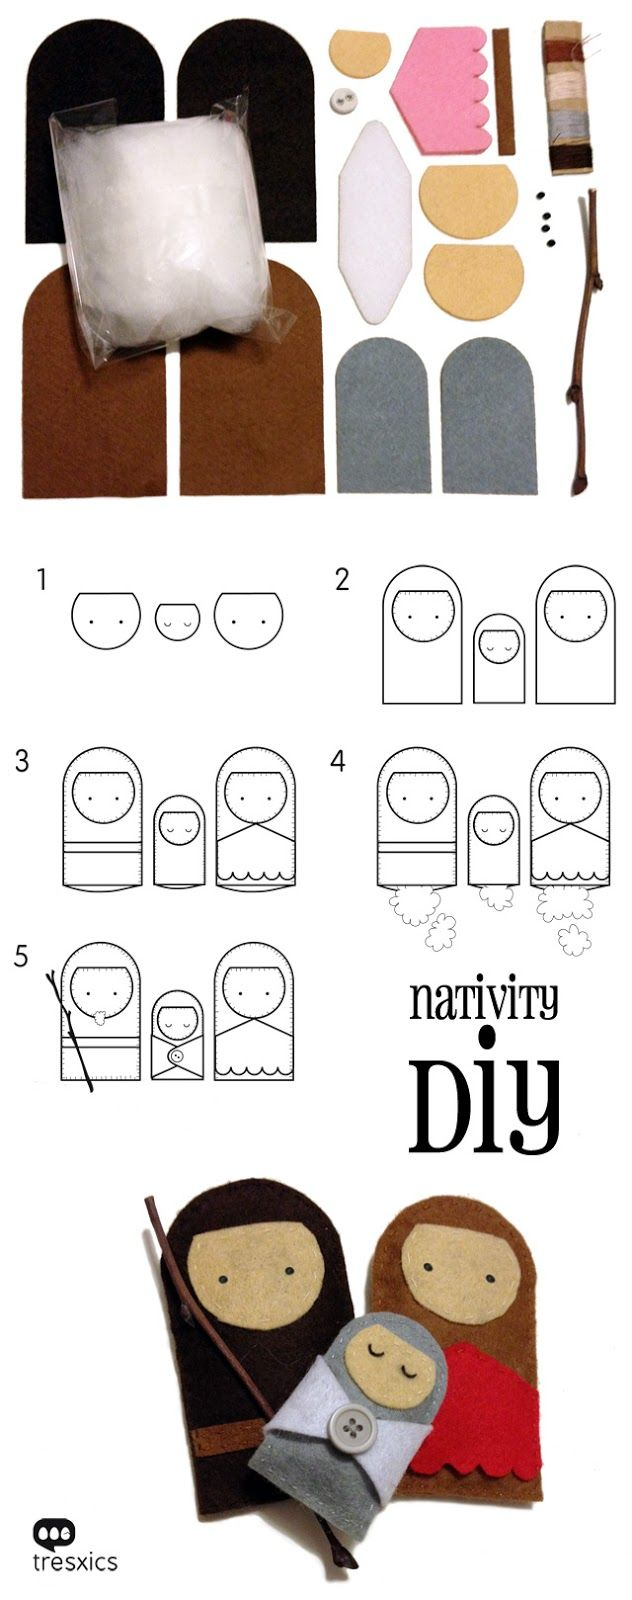 Holy Family Christmas. Felt Nativity Mary, Joseph & Jesus. Kid Crafts. diy kit tresxics